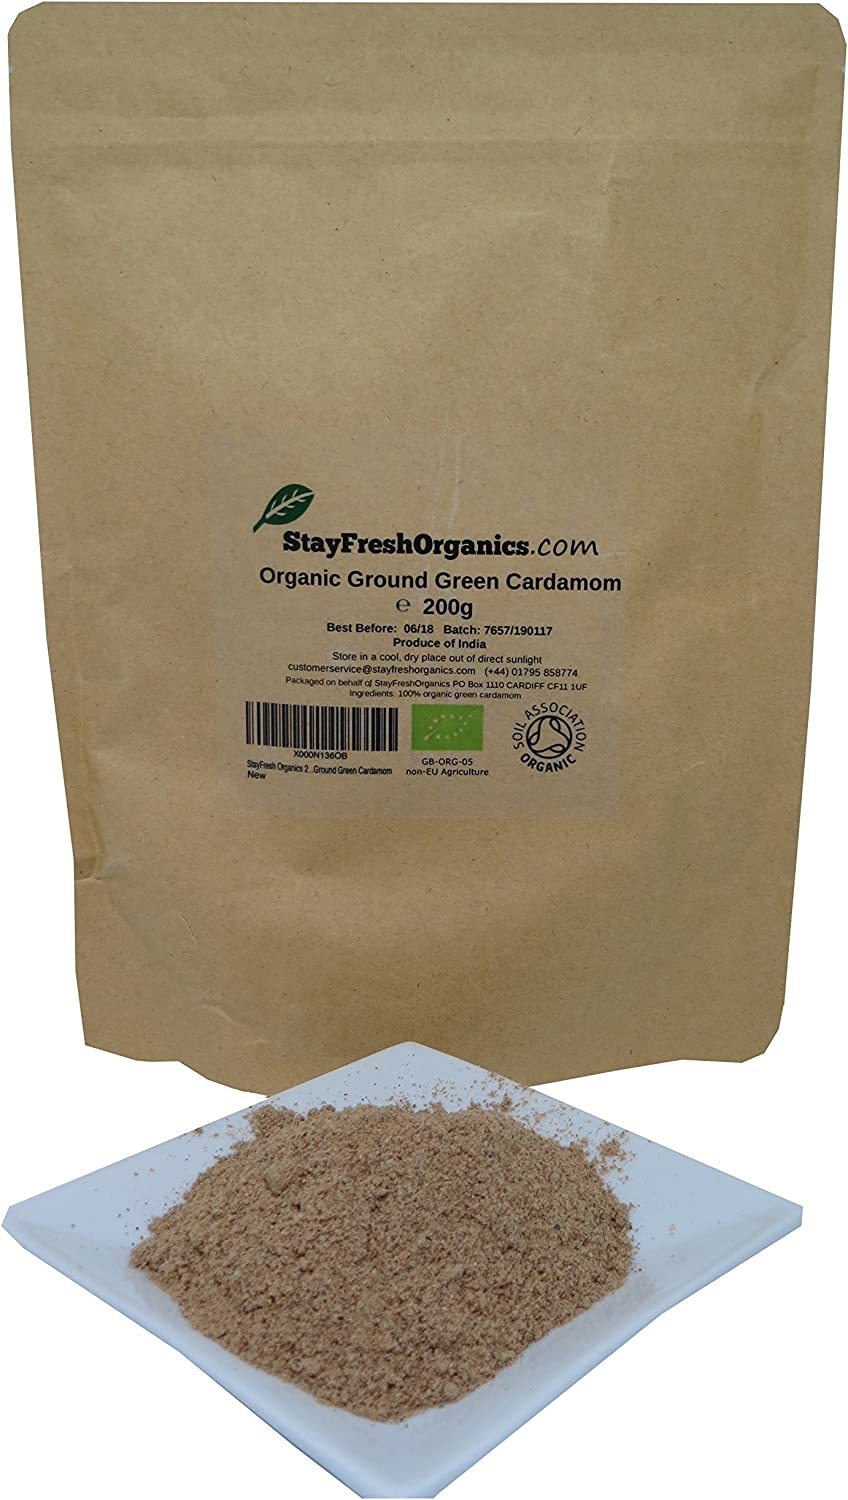 200g Organic Ground Cardamom By Stay Fresh Organics Certified By Soil Association Free Delivery Resealable Pouch Amazon Co Uk Grocery